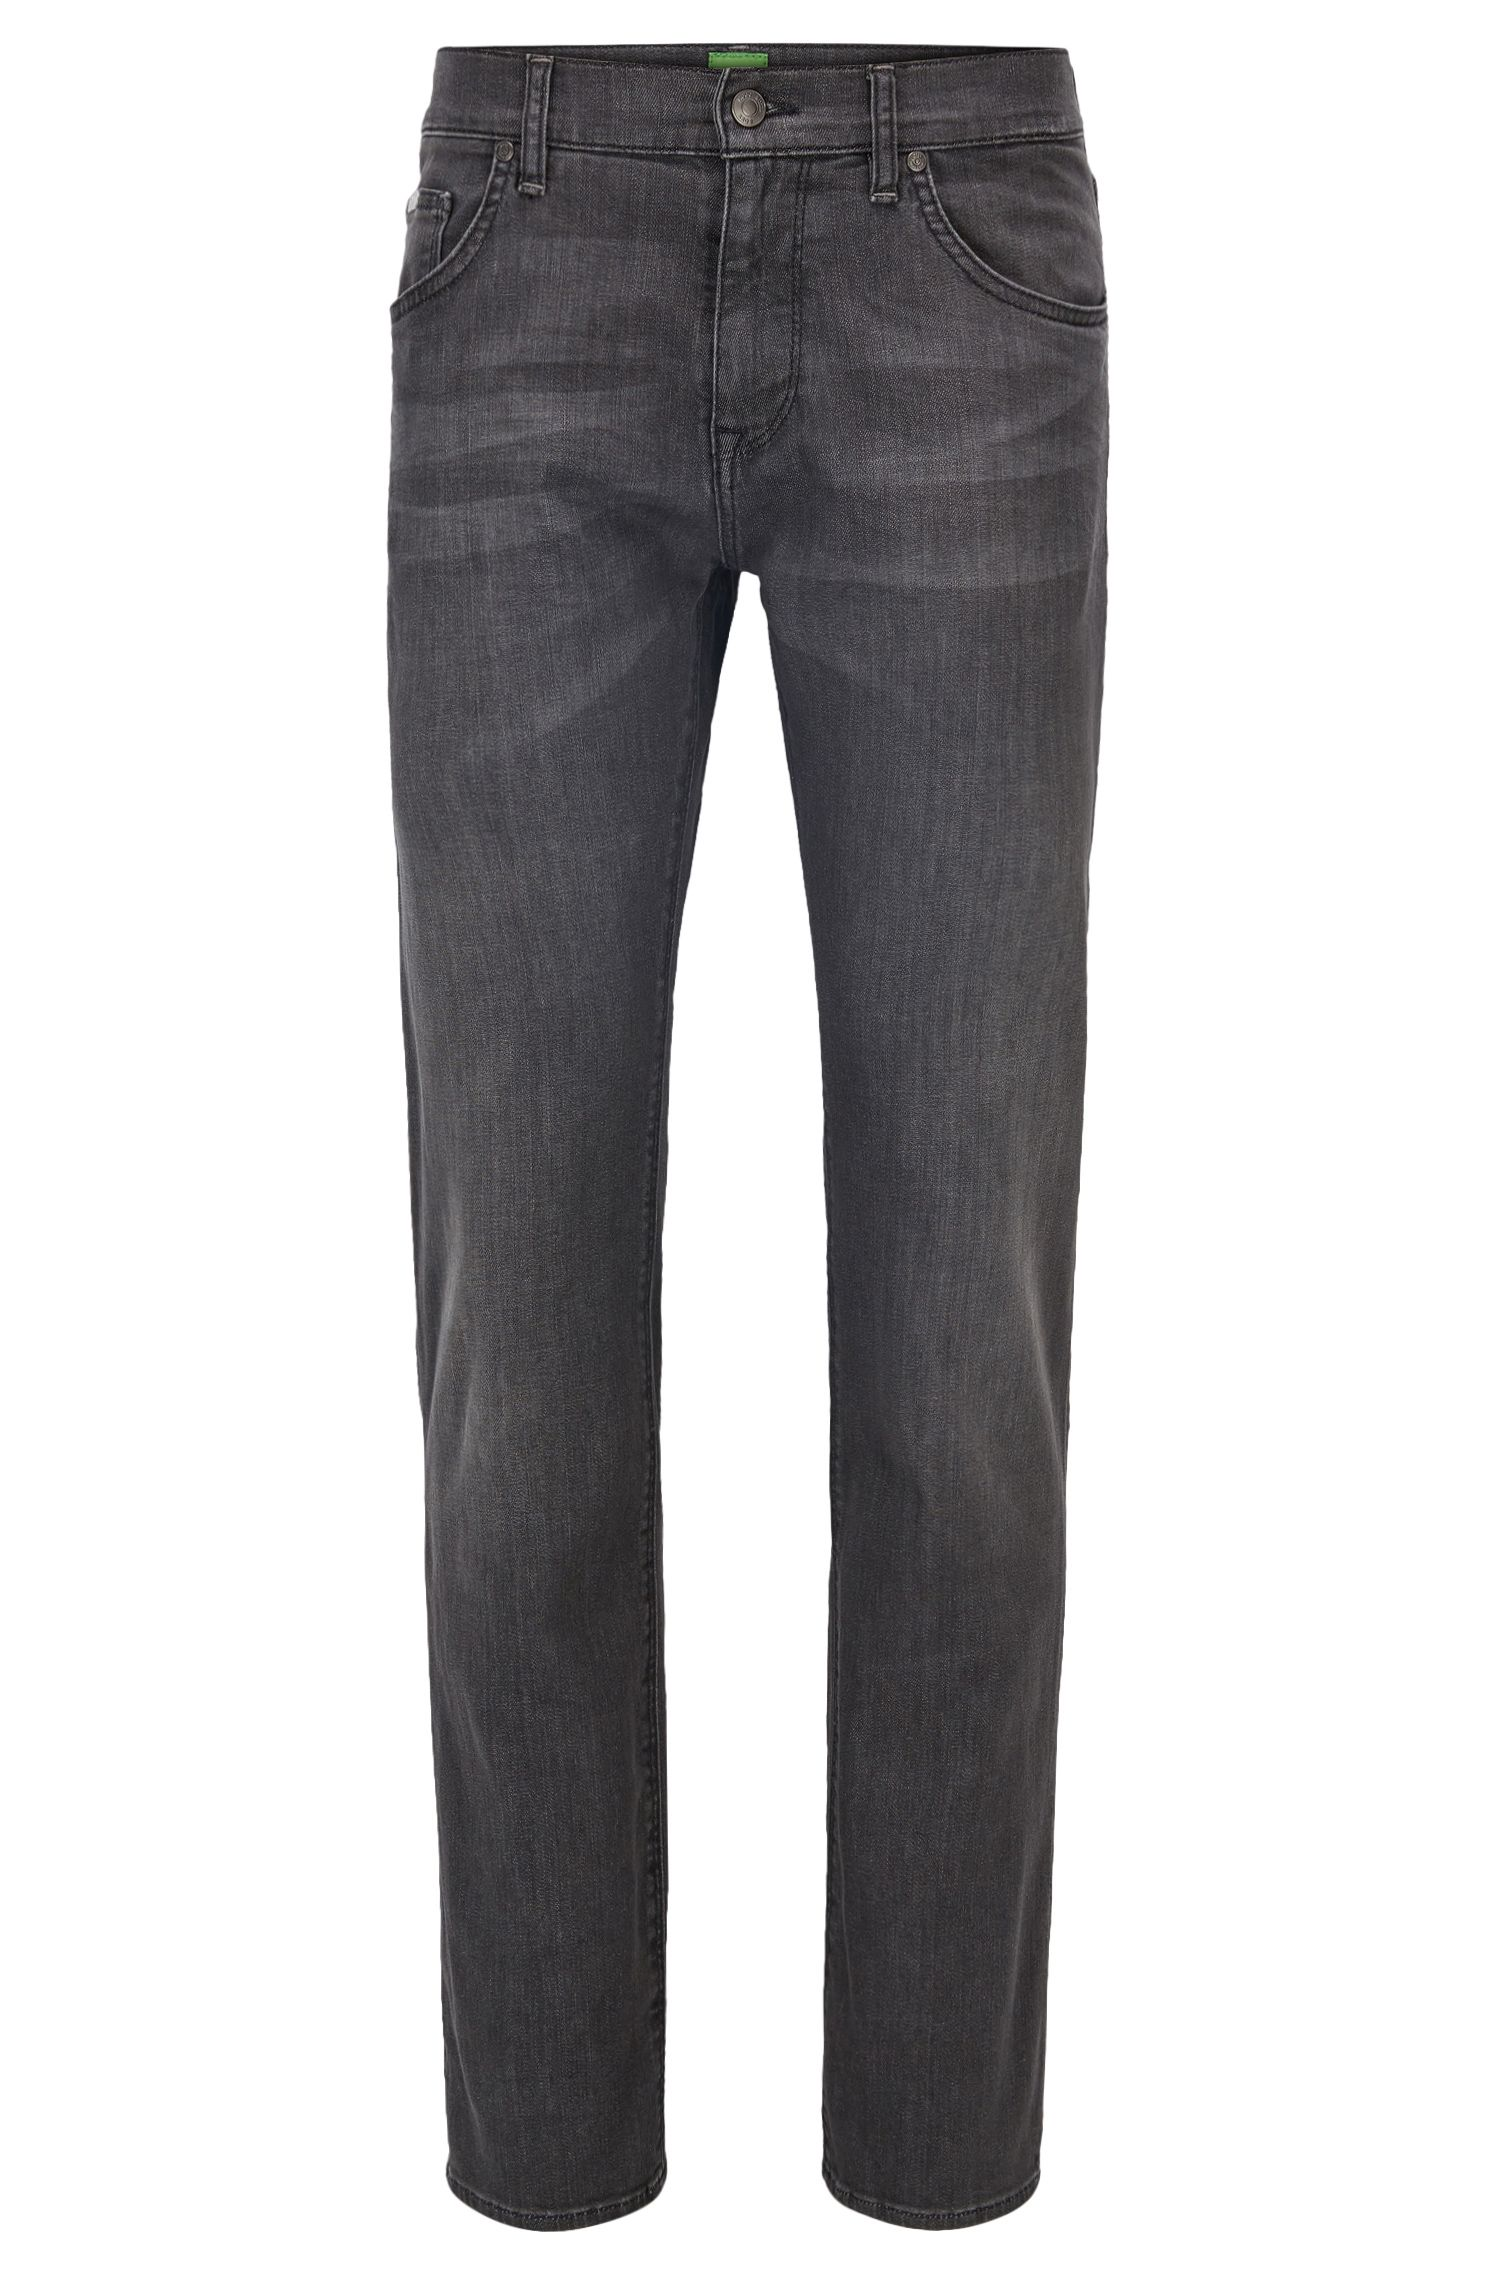 Jeans Regular Fit en denim stretch anthracite